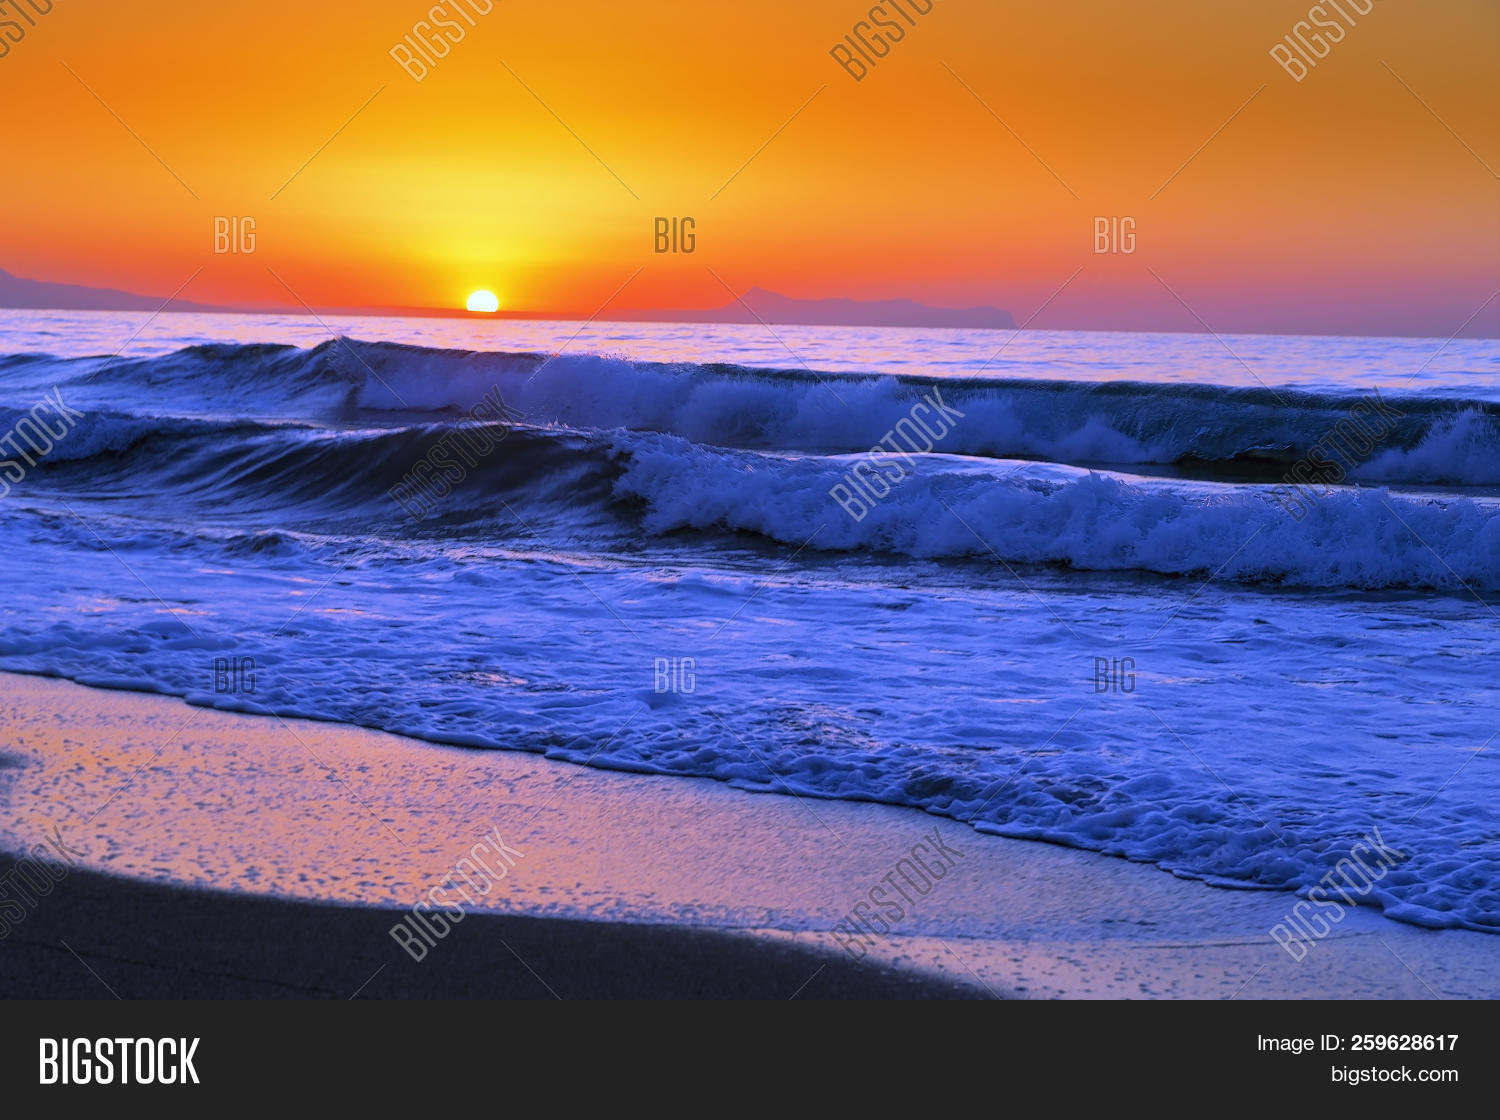 Crete,Europe,Grecce,Mediterranean,Rethimno,Rethymno,amazing,background,beach,beautiful,blue,coastline,colorful,dusk,edge,evening,fairy,gold,idyllic,island,joy,landscape,light,majestic,nature,night,outdoors,pattern,picture,sand,scenery,scenics,sea,seascape,shore,sky,summer,sun,sunlight,sunset,surface,tourism,view,warmth,water,wave,weather,wonderful,yellow